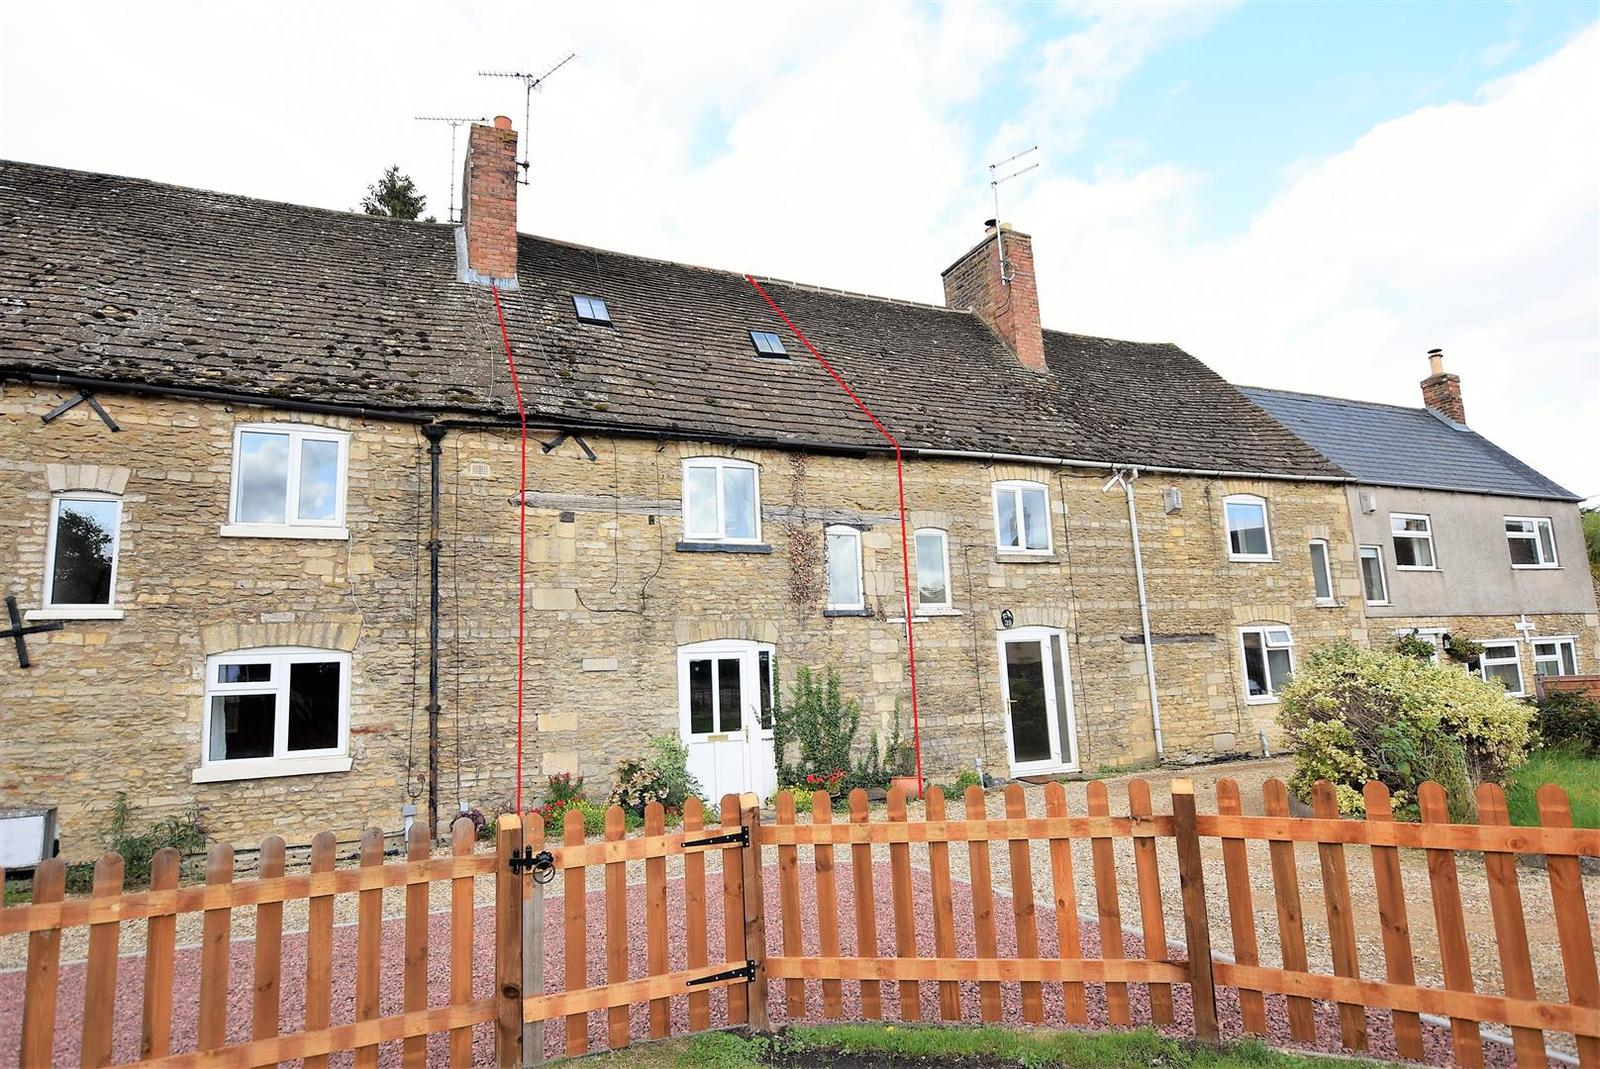 3 Bedrooms Terraced House for sale in Main Road, Uffington, Stamford